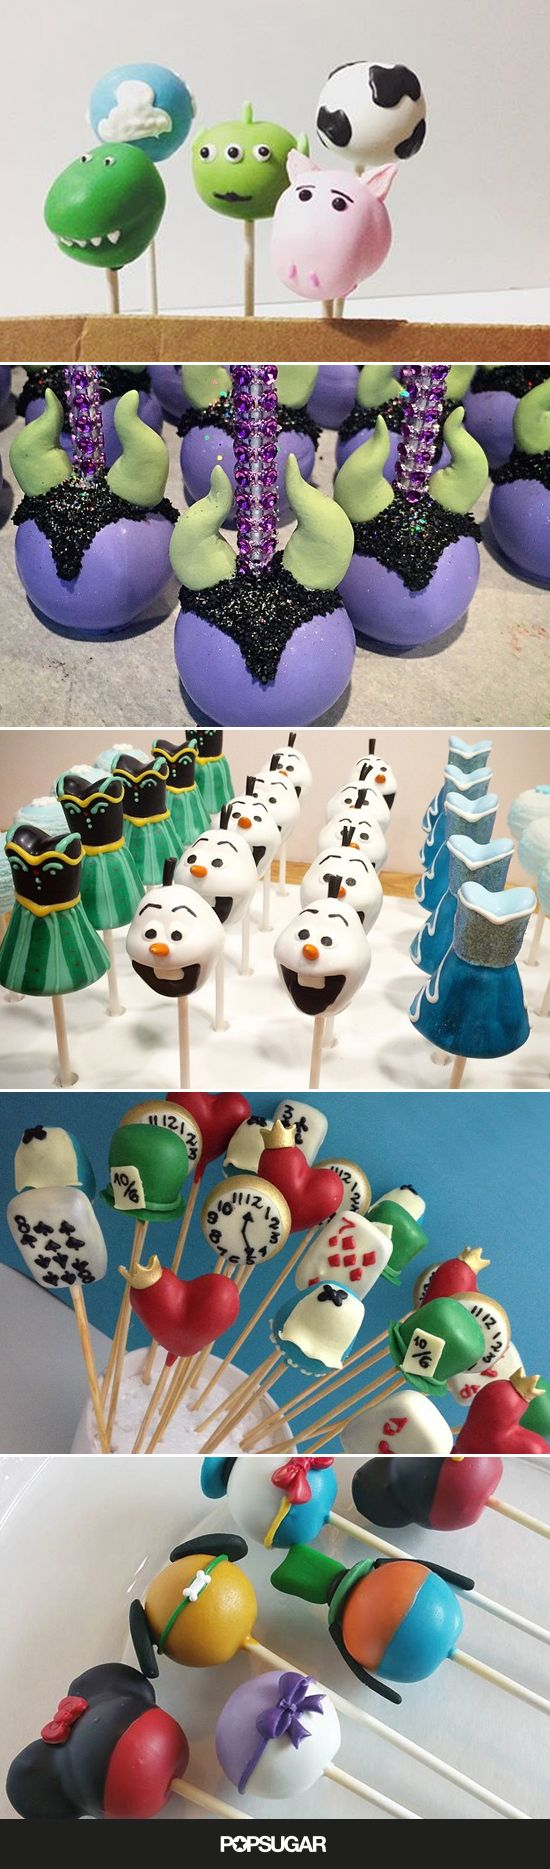 Drool Over Your Favorite Disney Characters With These 33 Cake Pop Designs